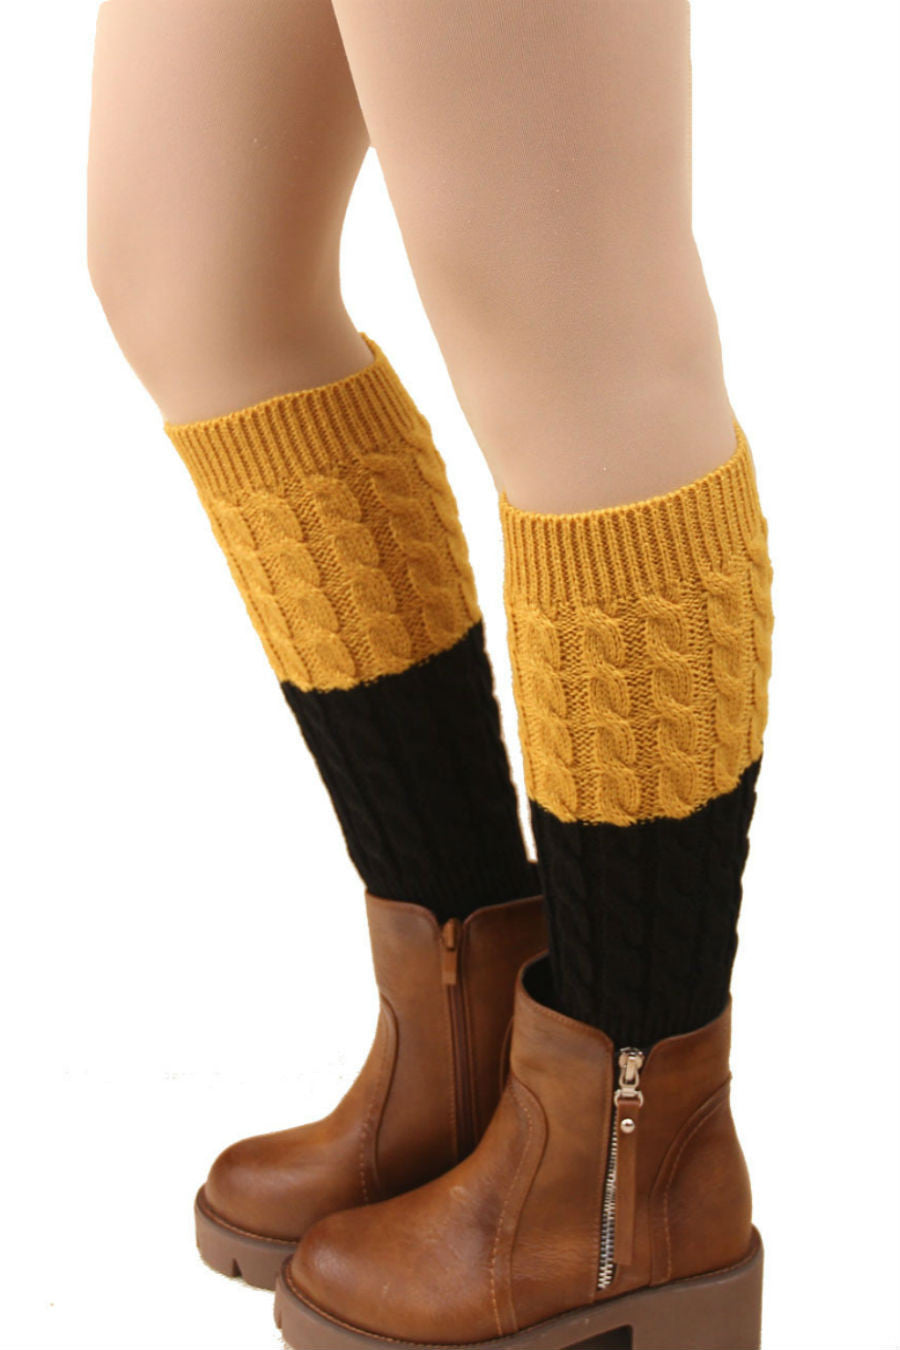 Orange And Black Cable Knit Boot Cuffs